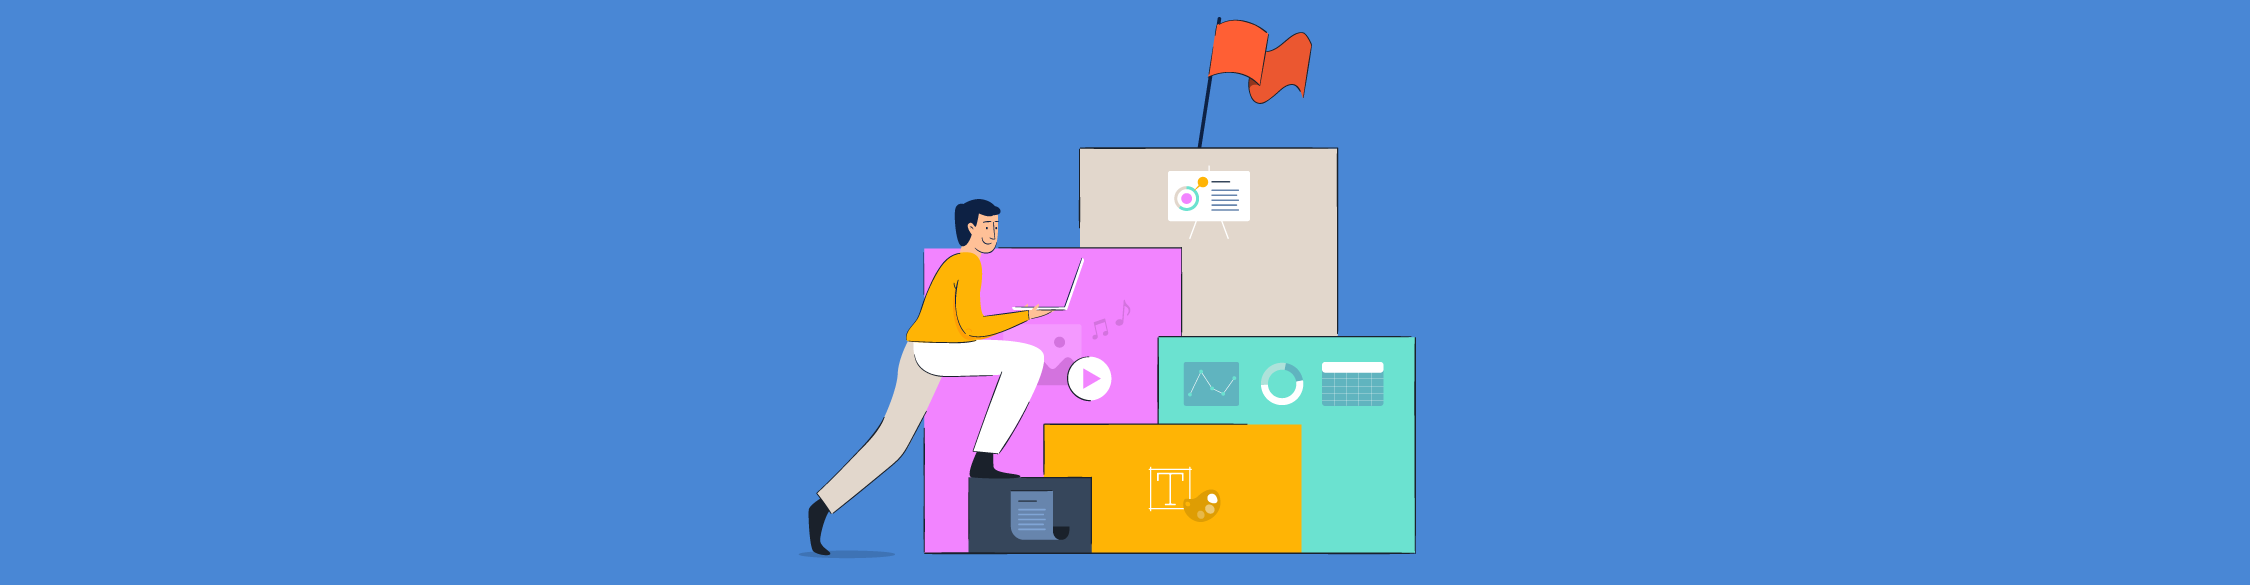 An illustration of a person stepping on blocks to create a presentation.